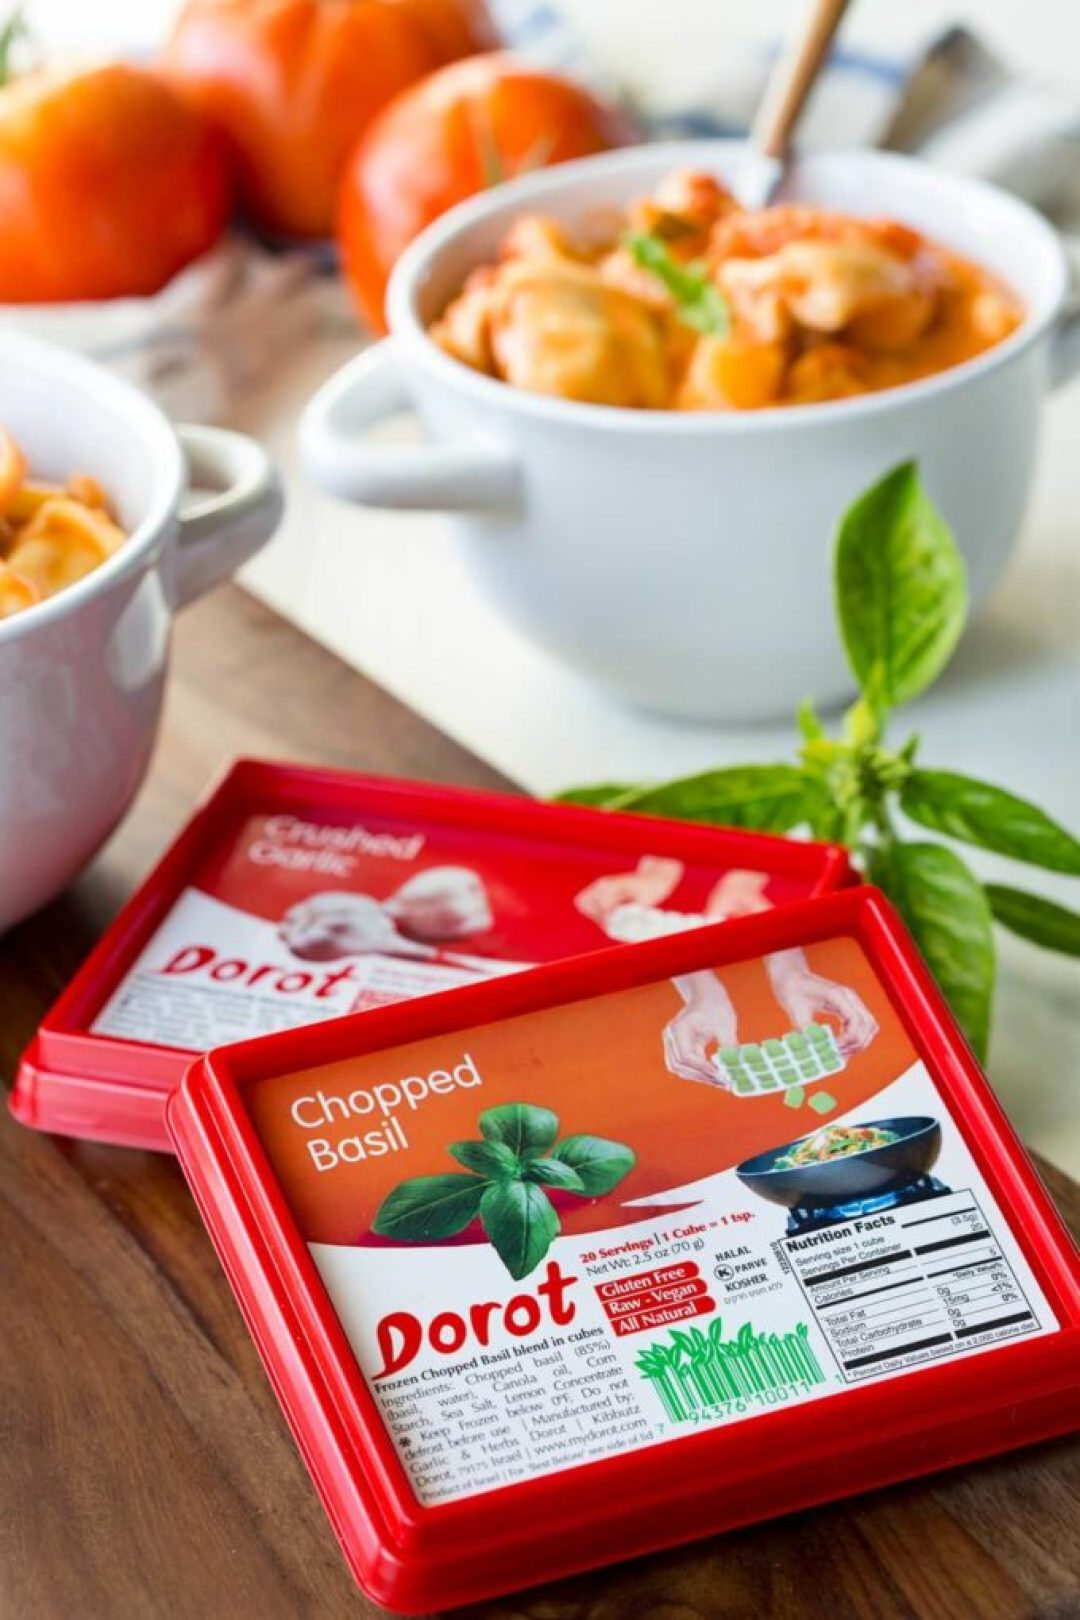 Dorot herbs make cooking easy